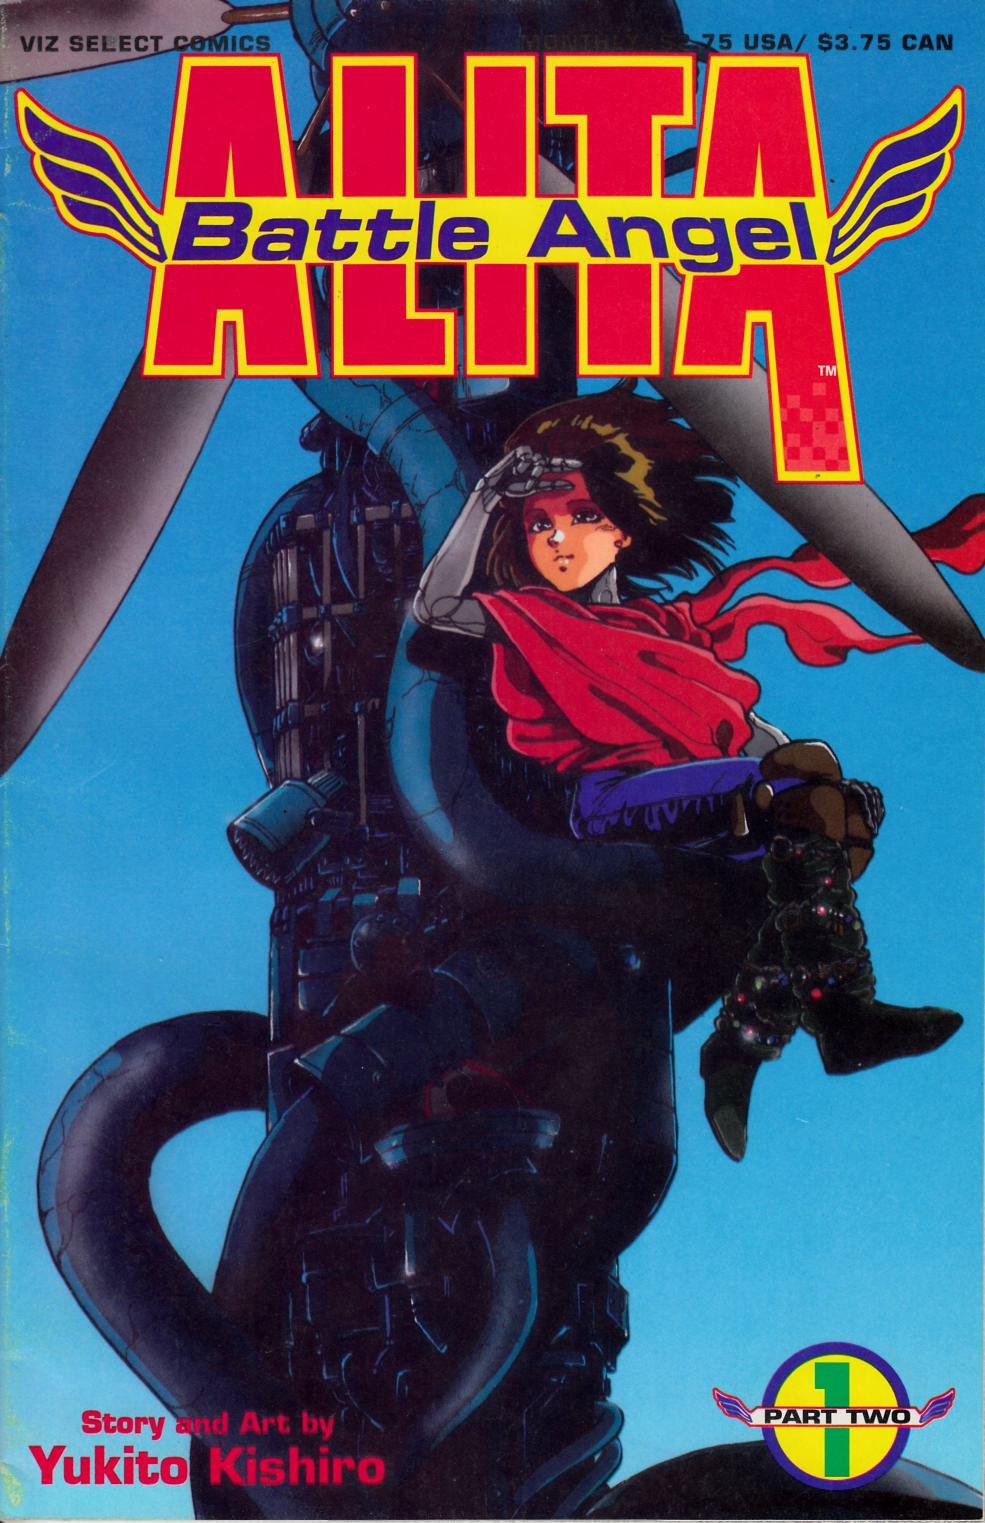 Battle Angel Alita Part 2 #1 Fine (6.0) [Viz Comic]